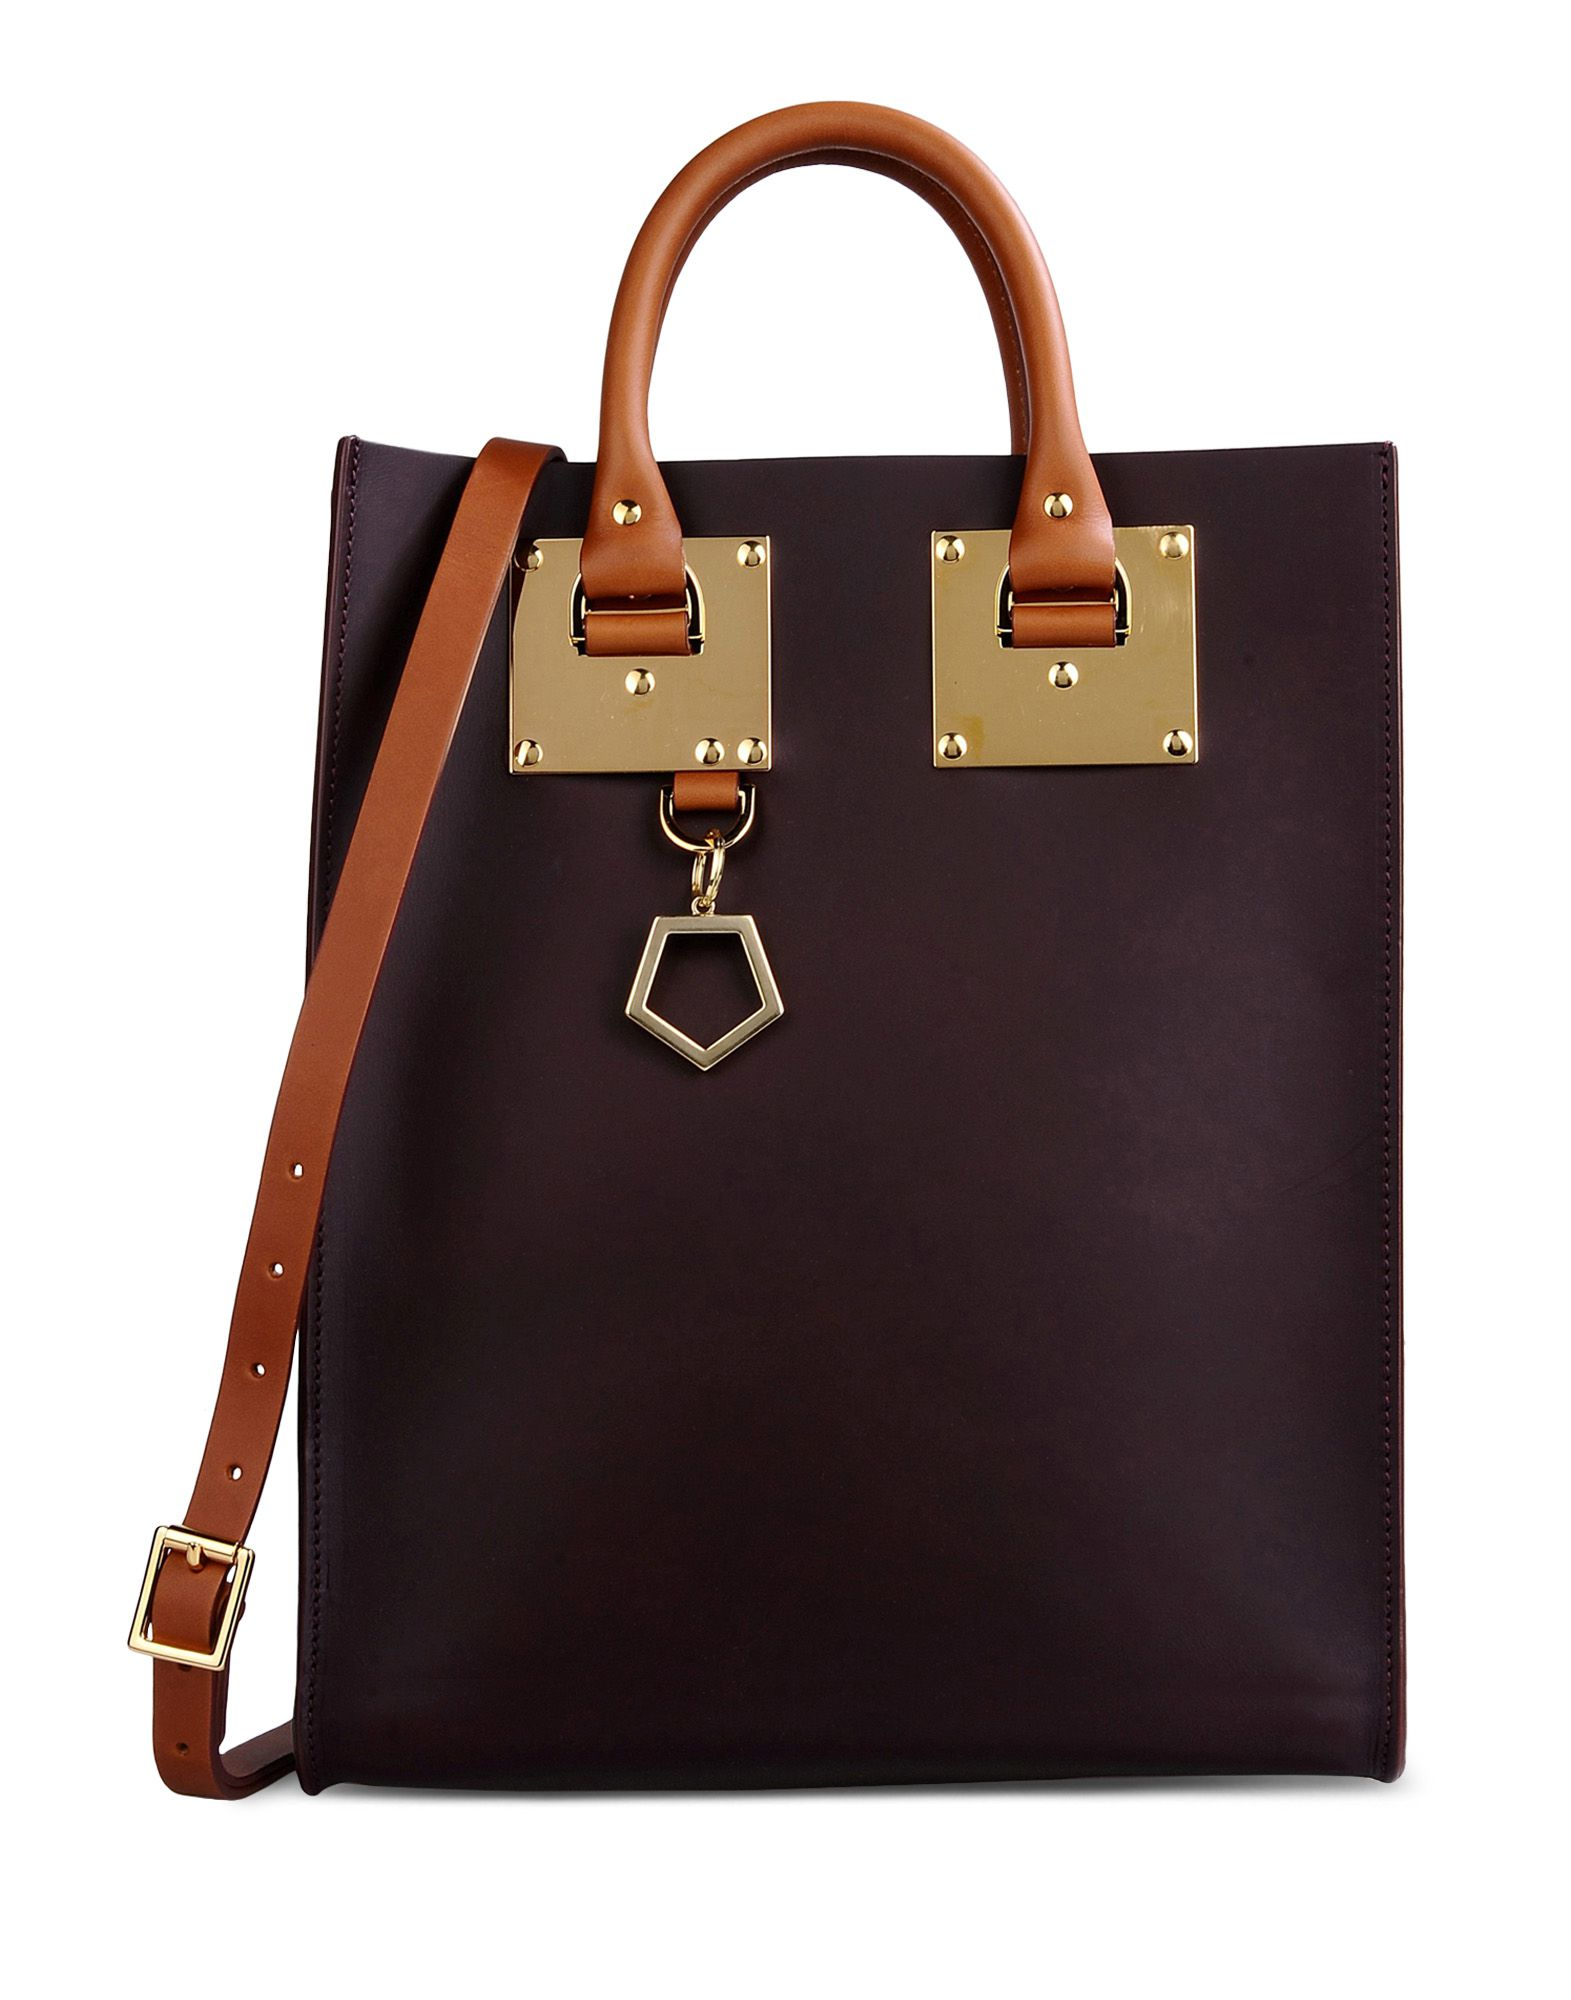 Sophie hulme Medium Leather Bag in Brown (Dark brown) | Lyst